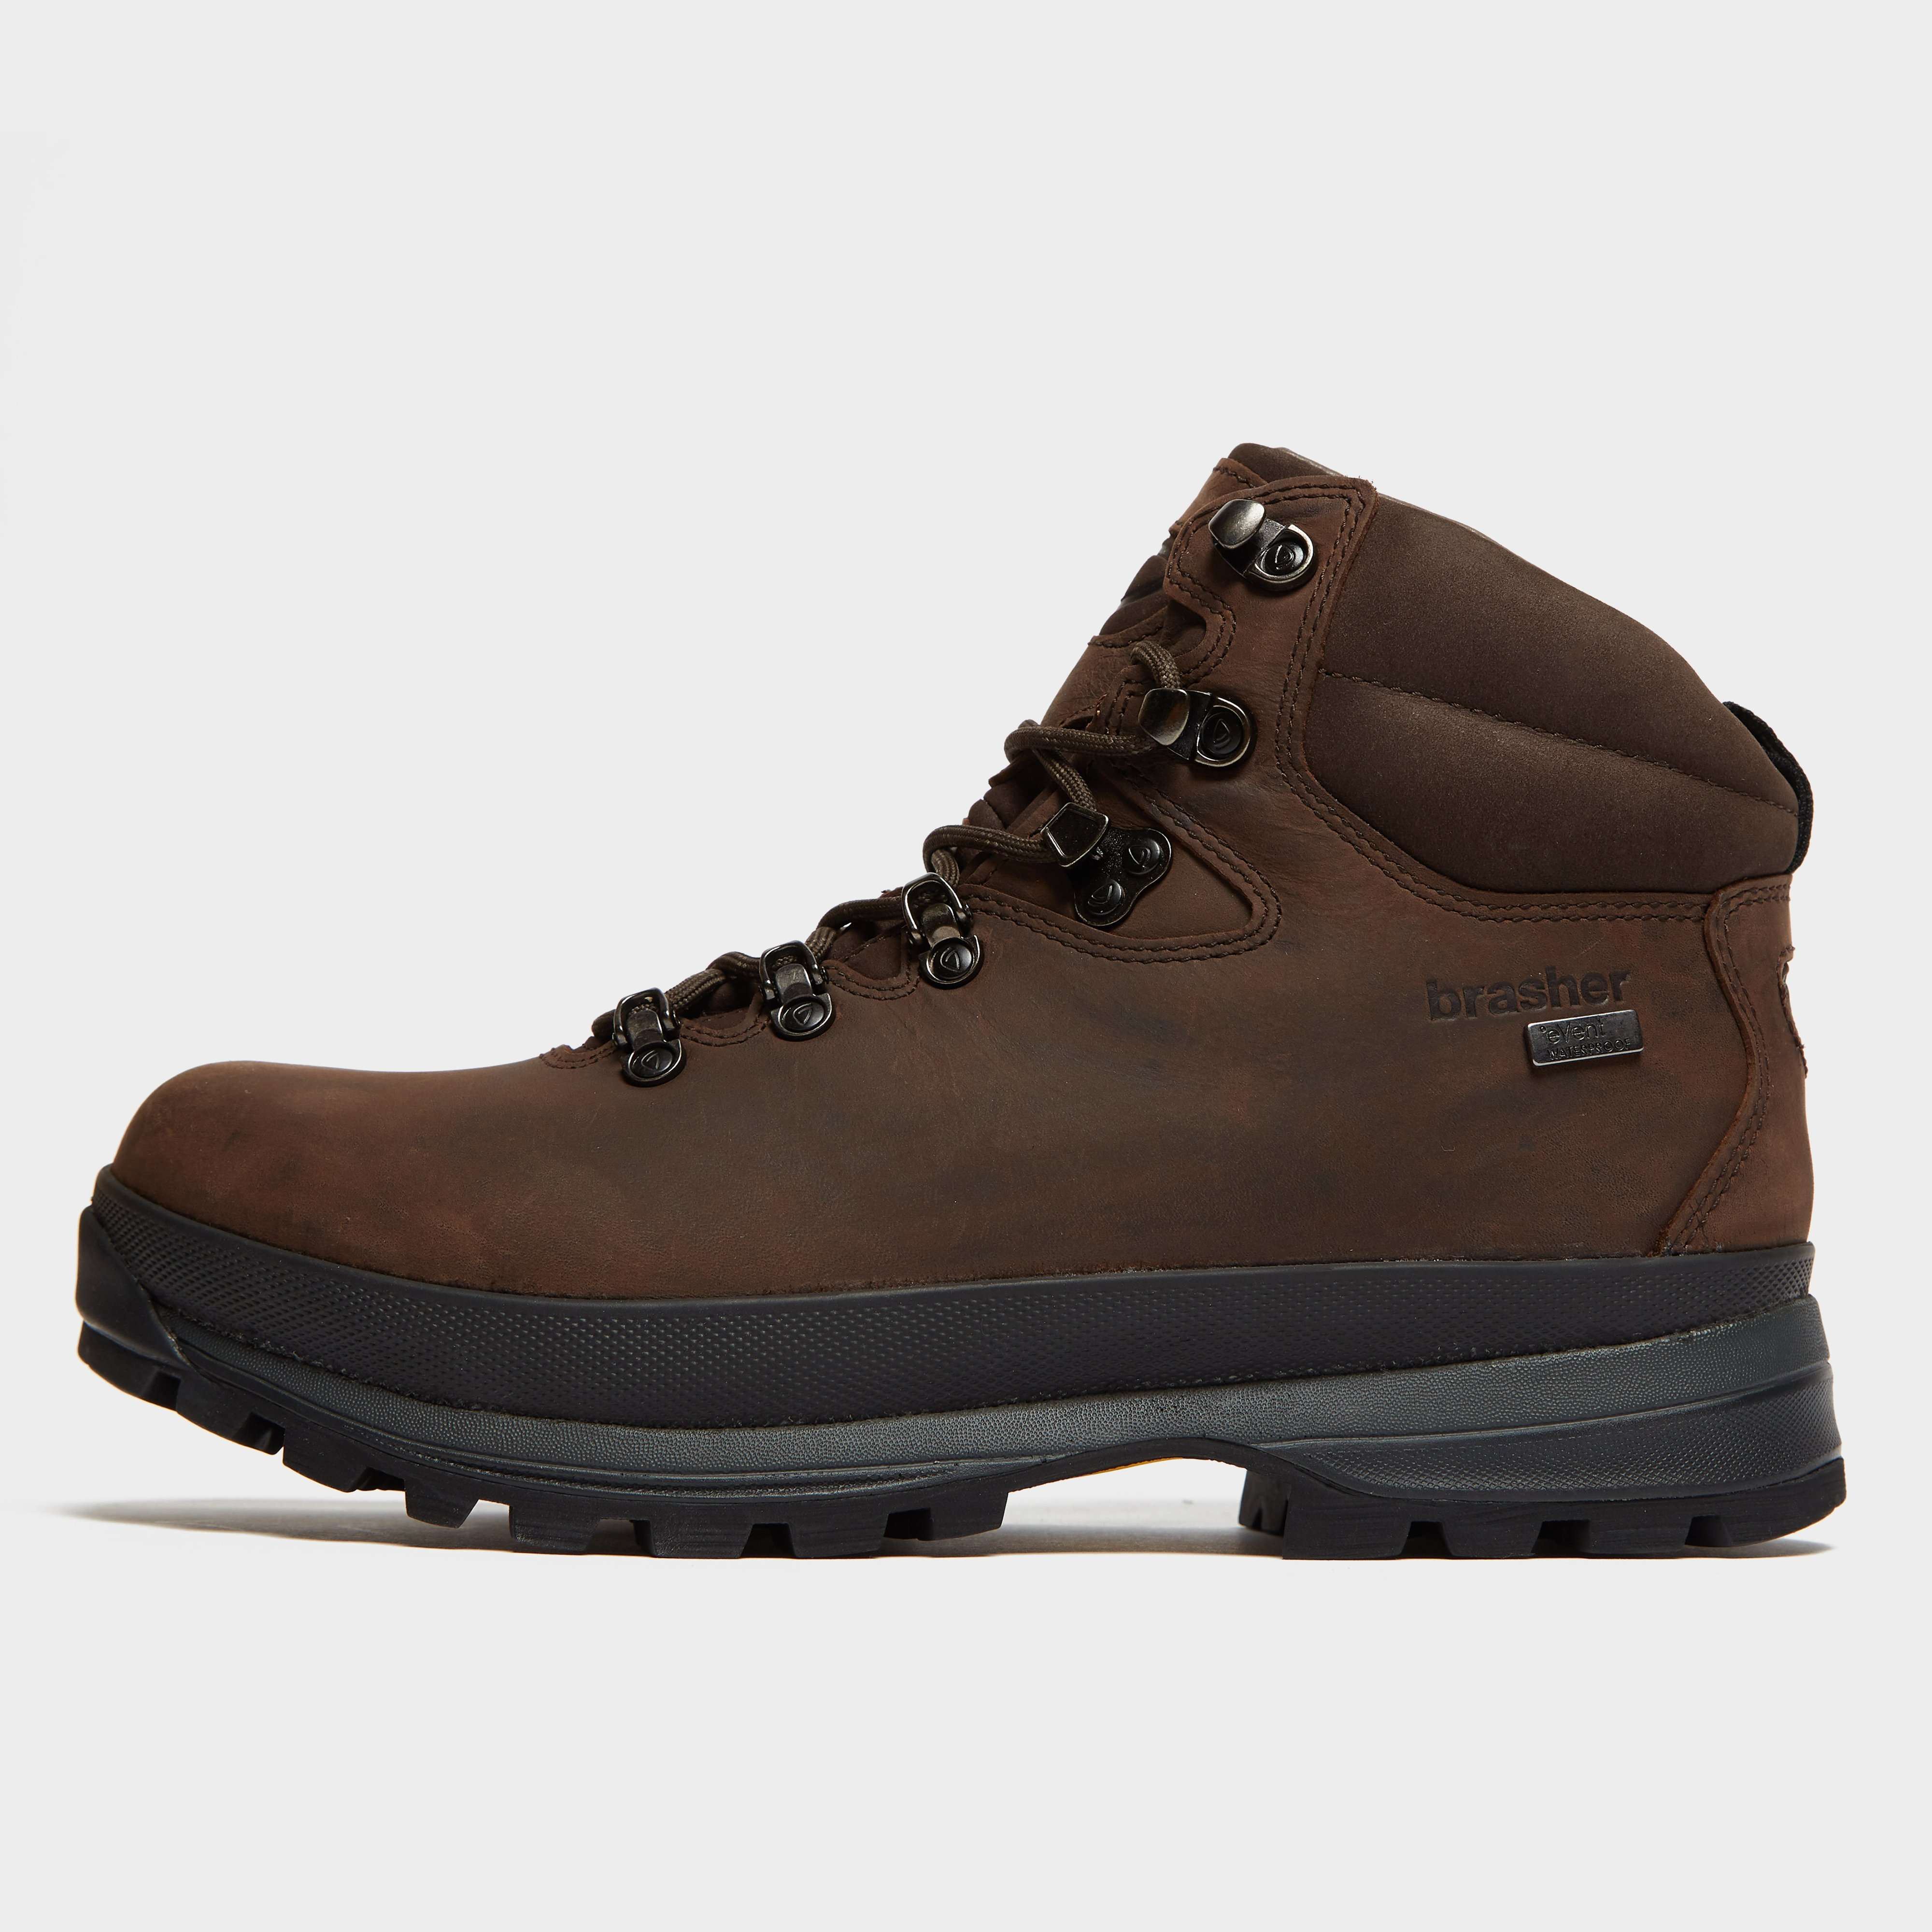 BRASHER Men's Country Master Walking Boots